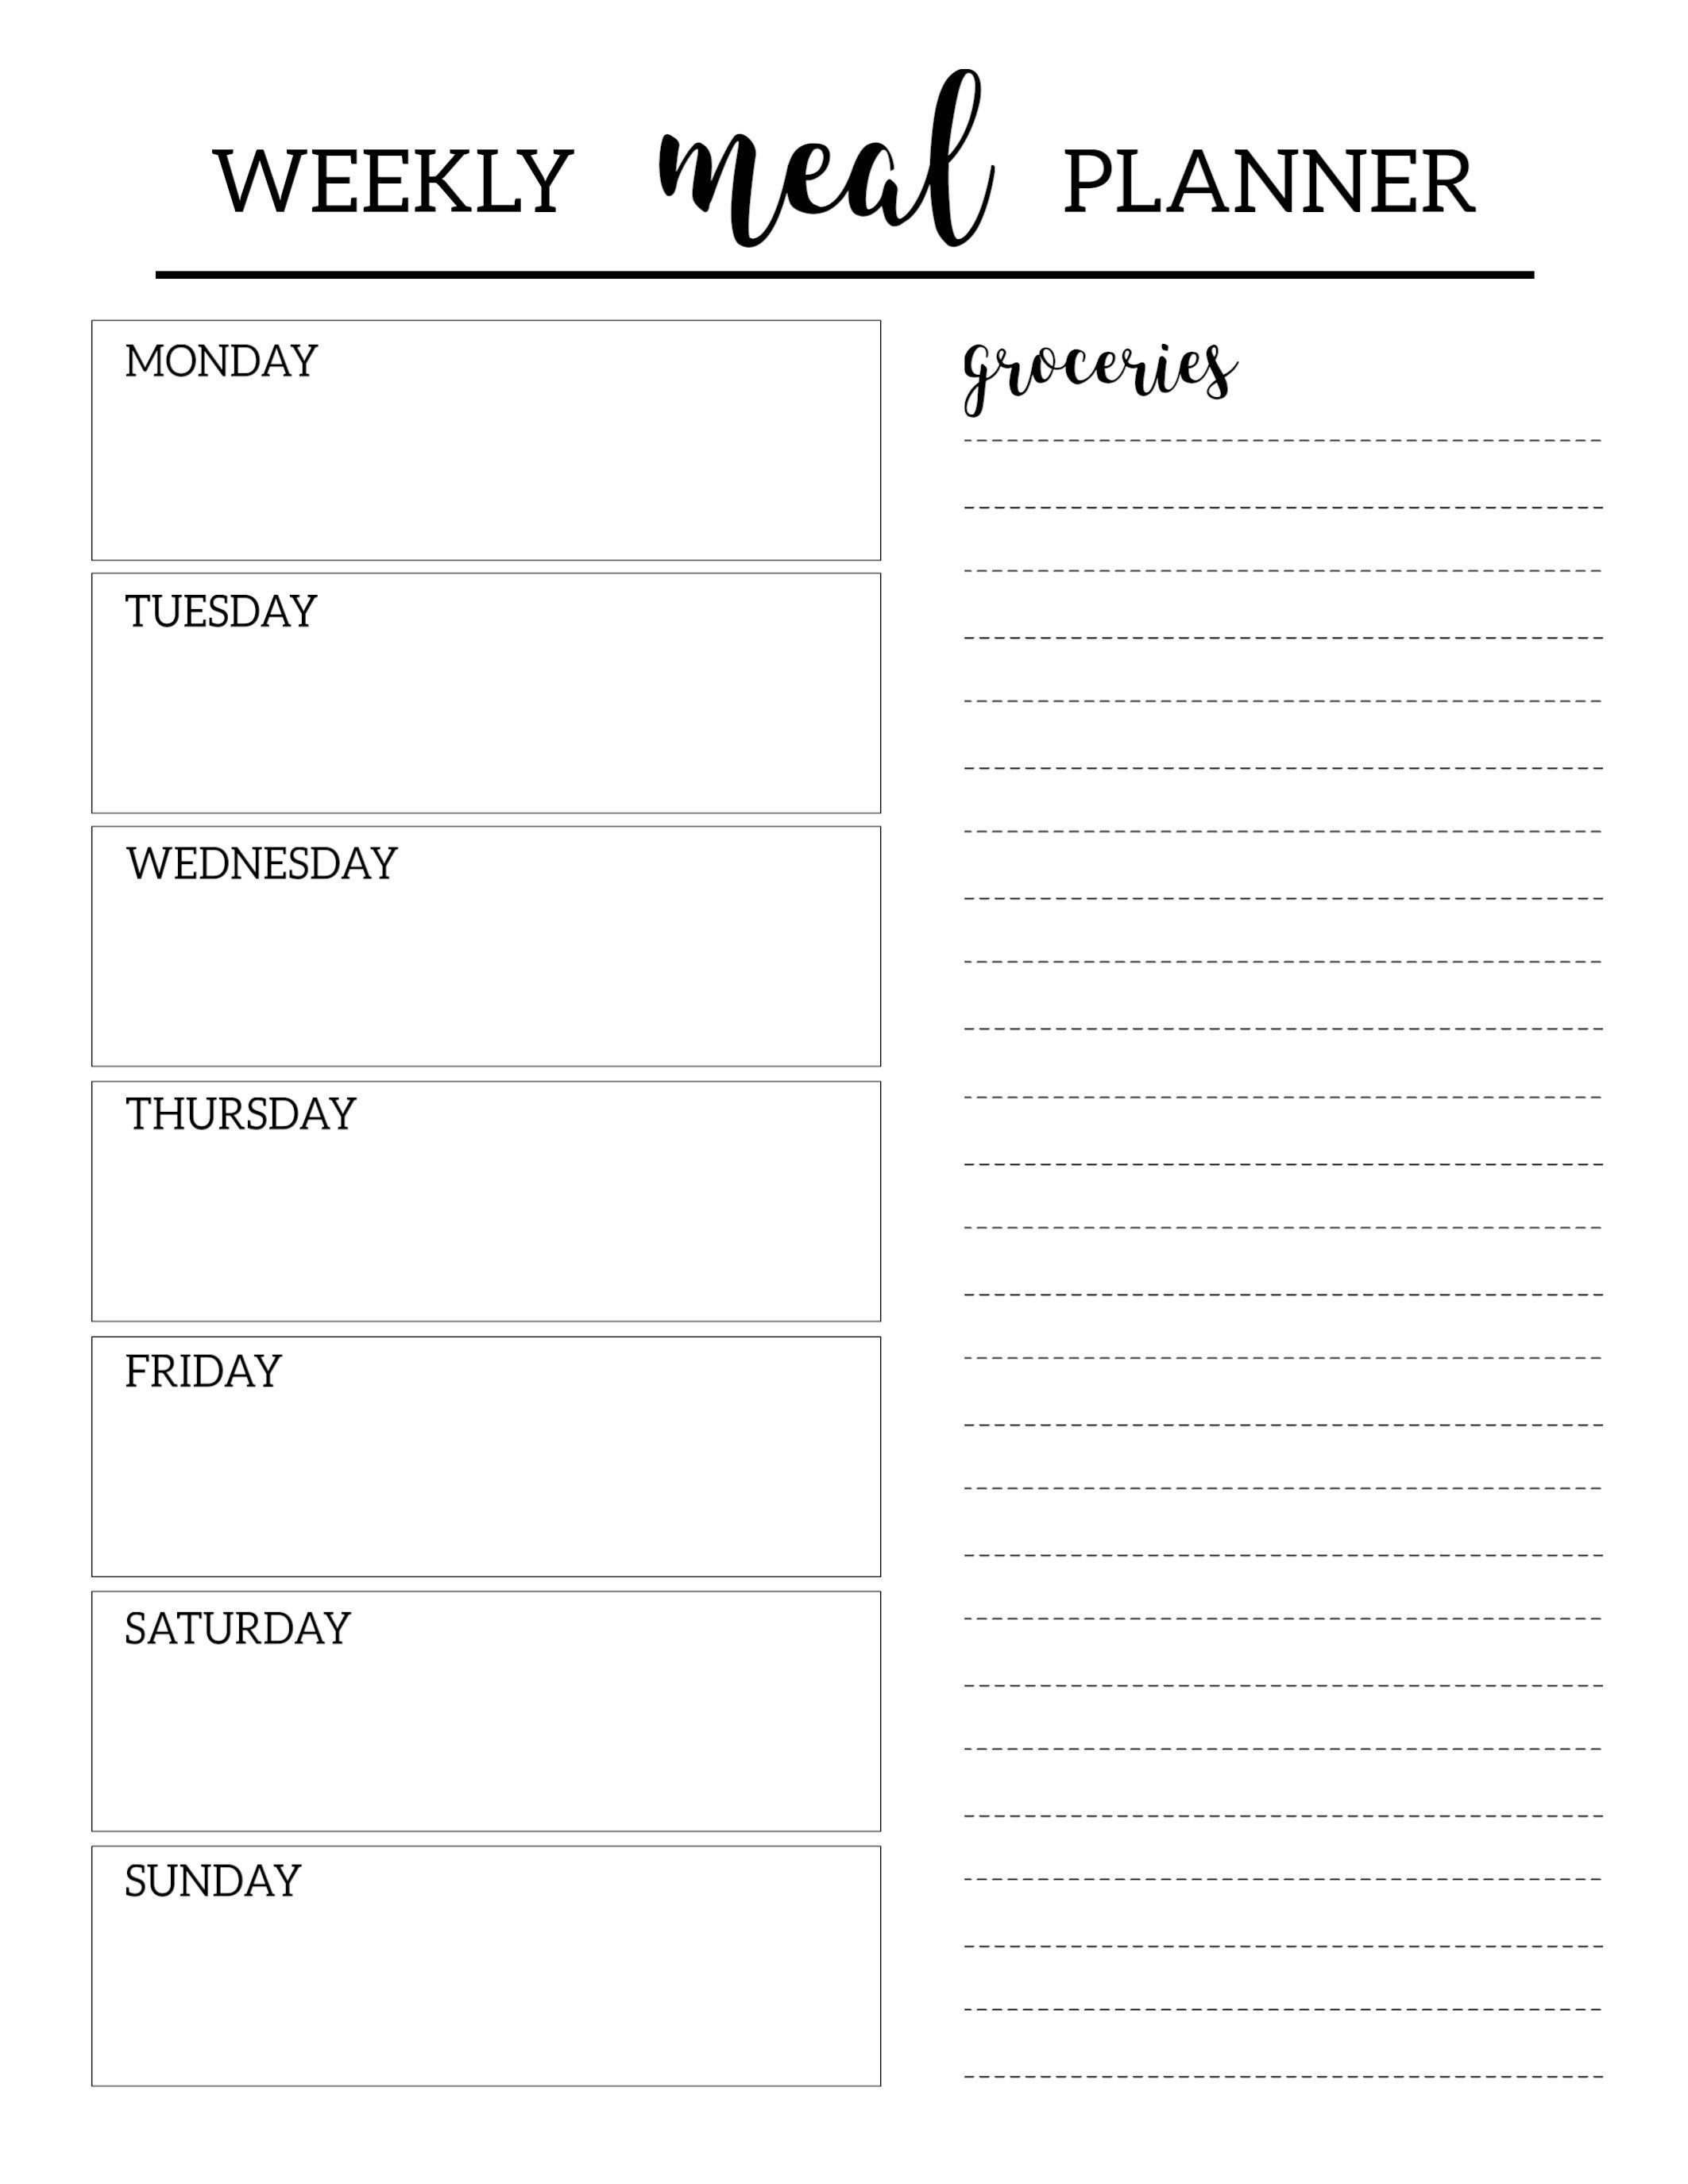 Weekly Free Meal Plan Template Idea  Worksheet Planner For Weight Los ExcelFull